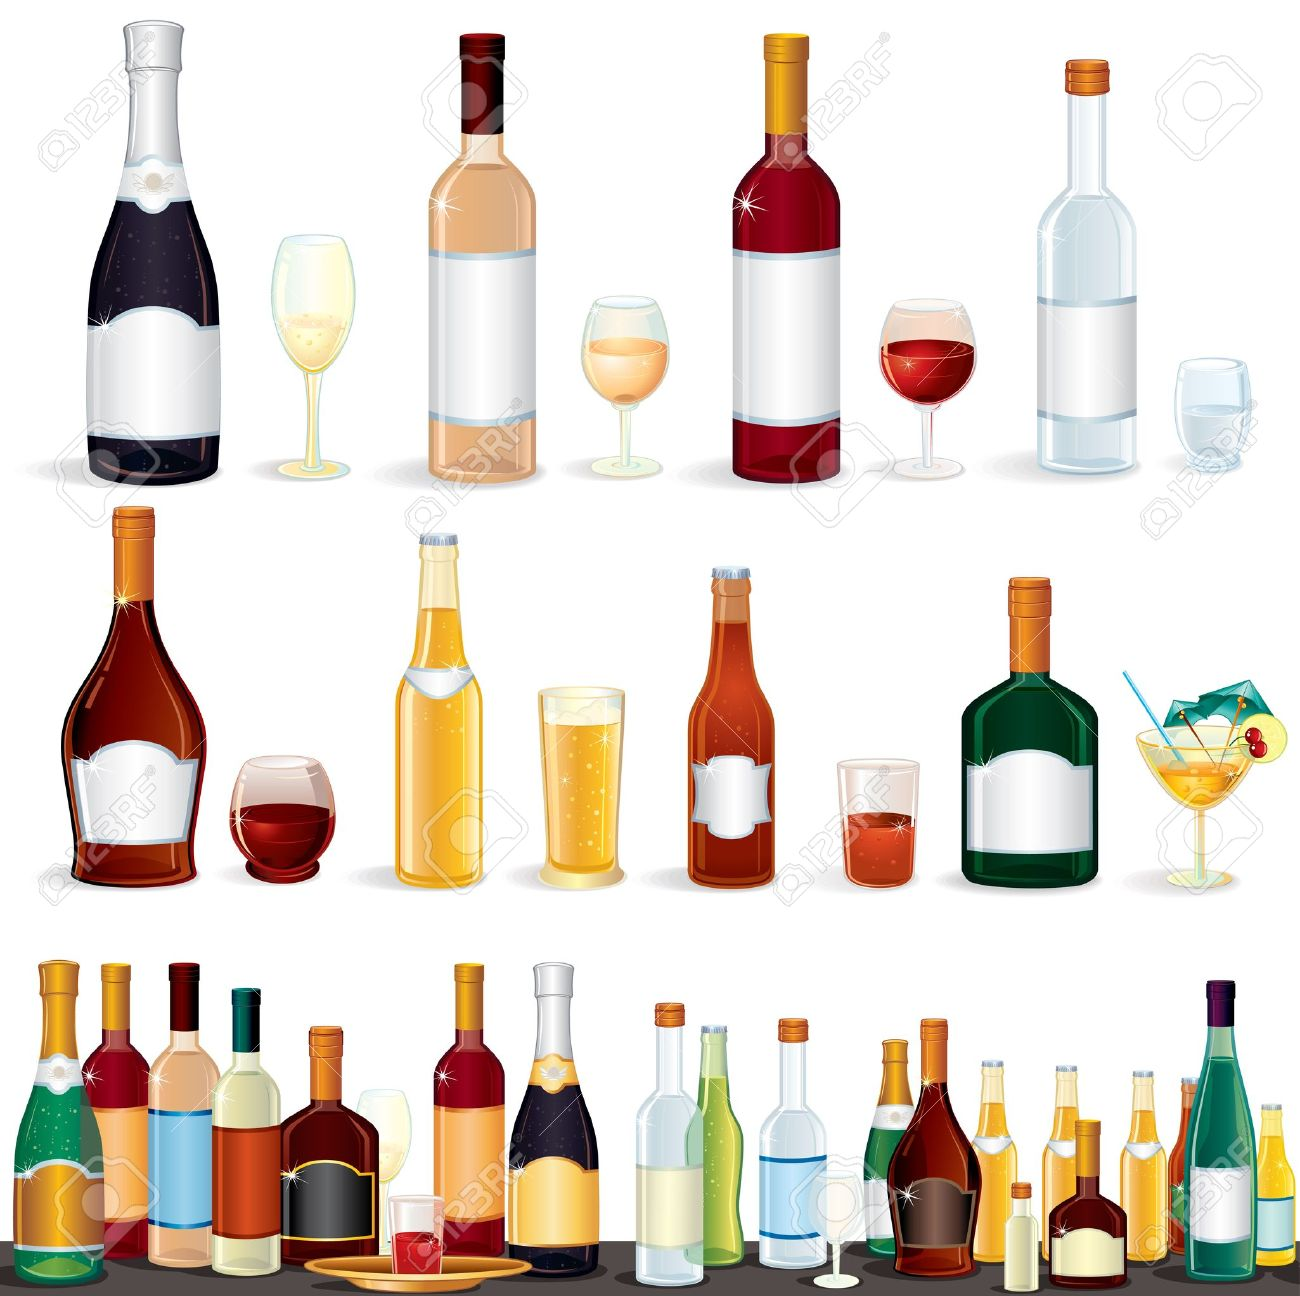 Alcohol clipart #13